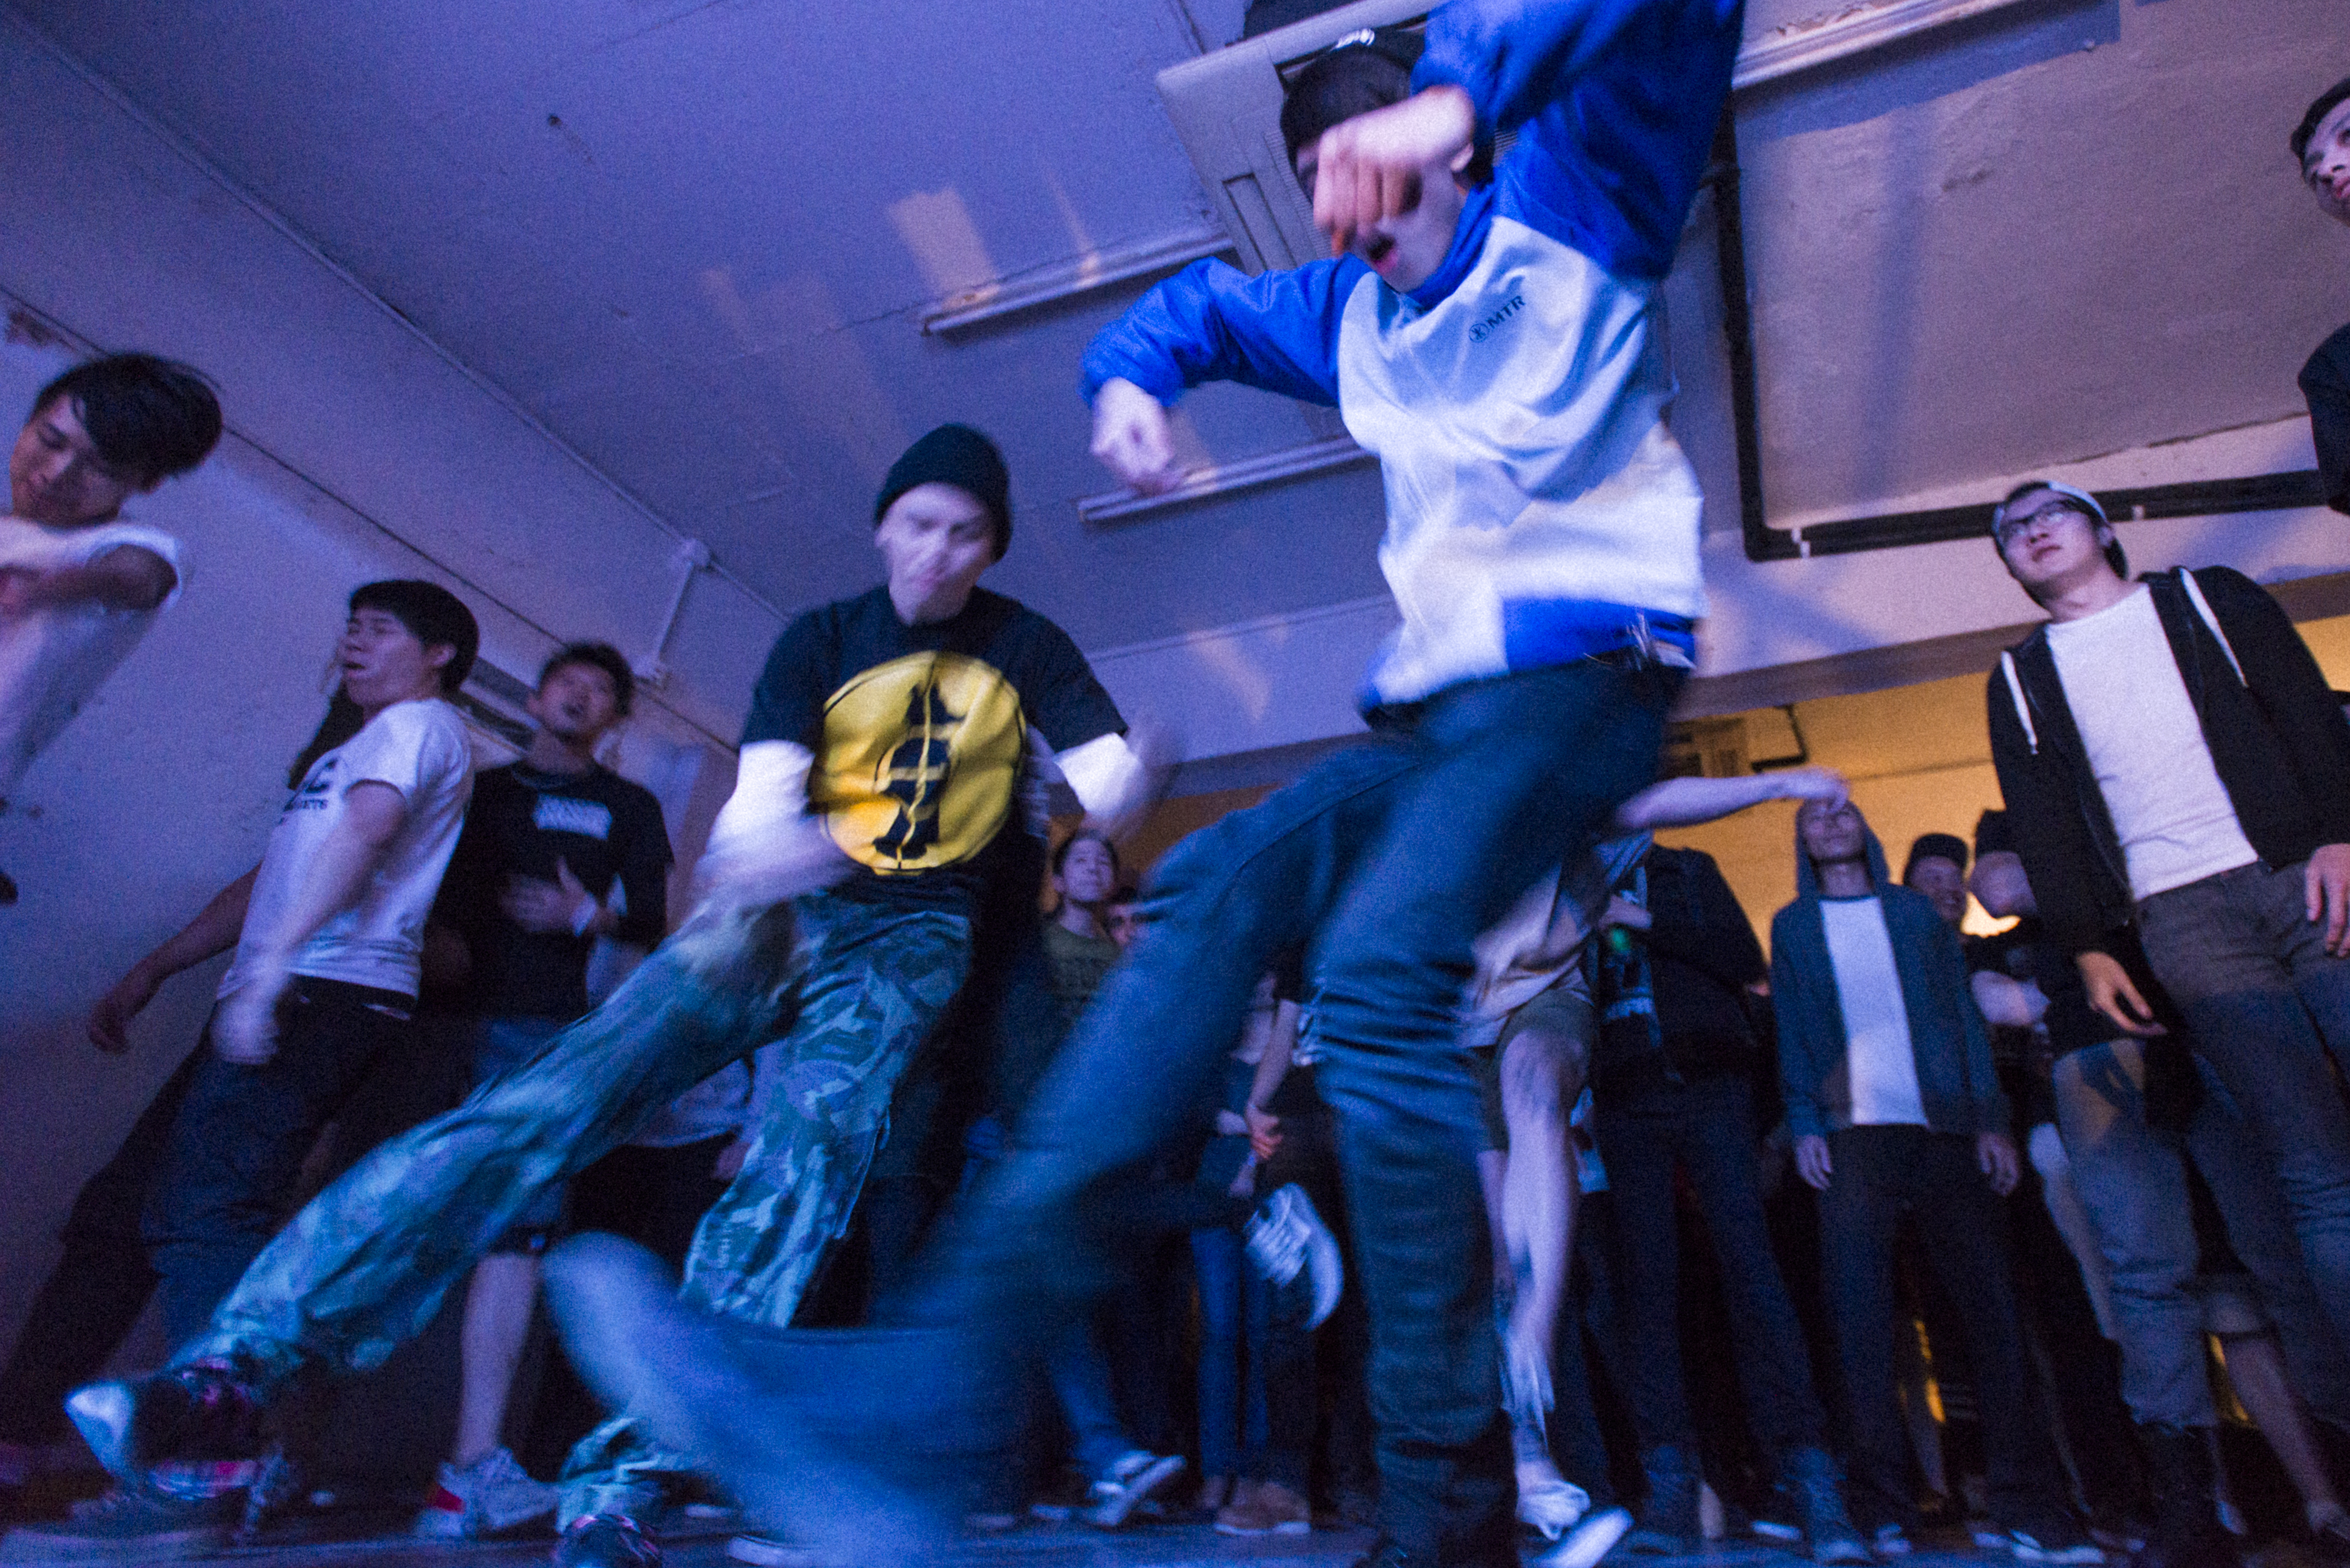 Fans two-step dance at a show.